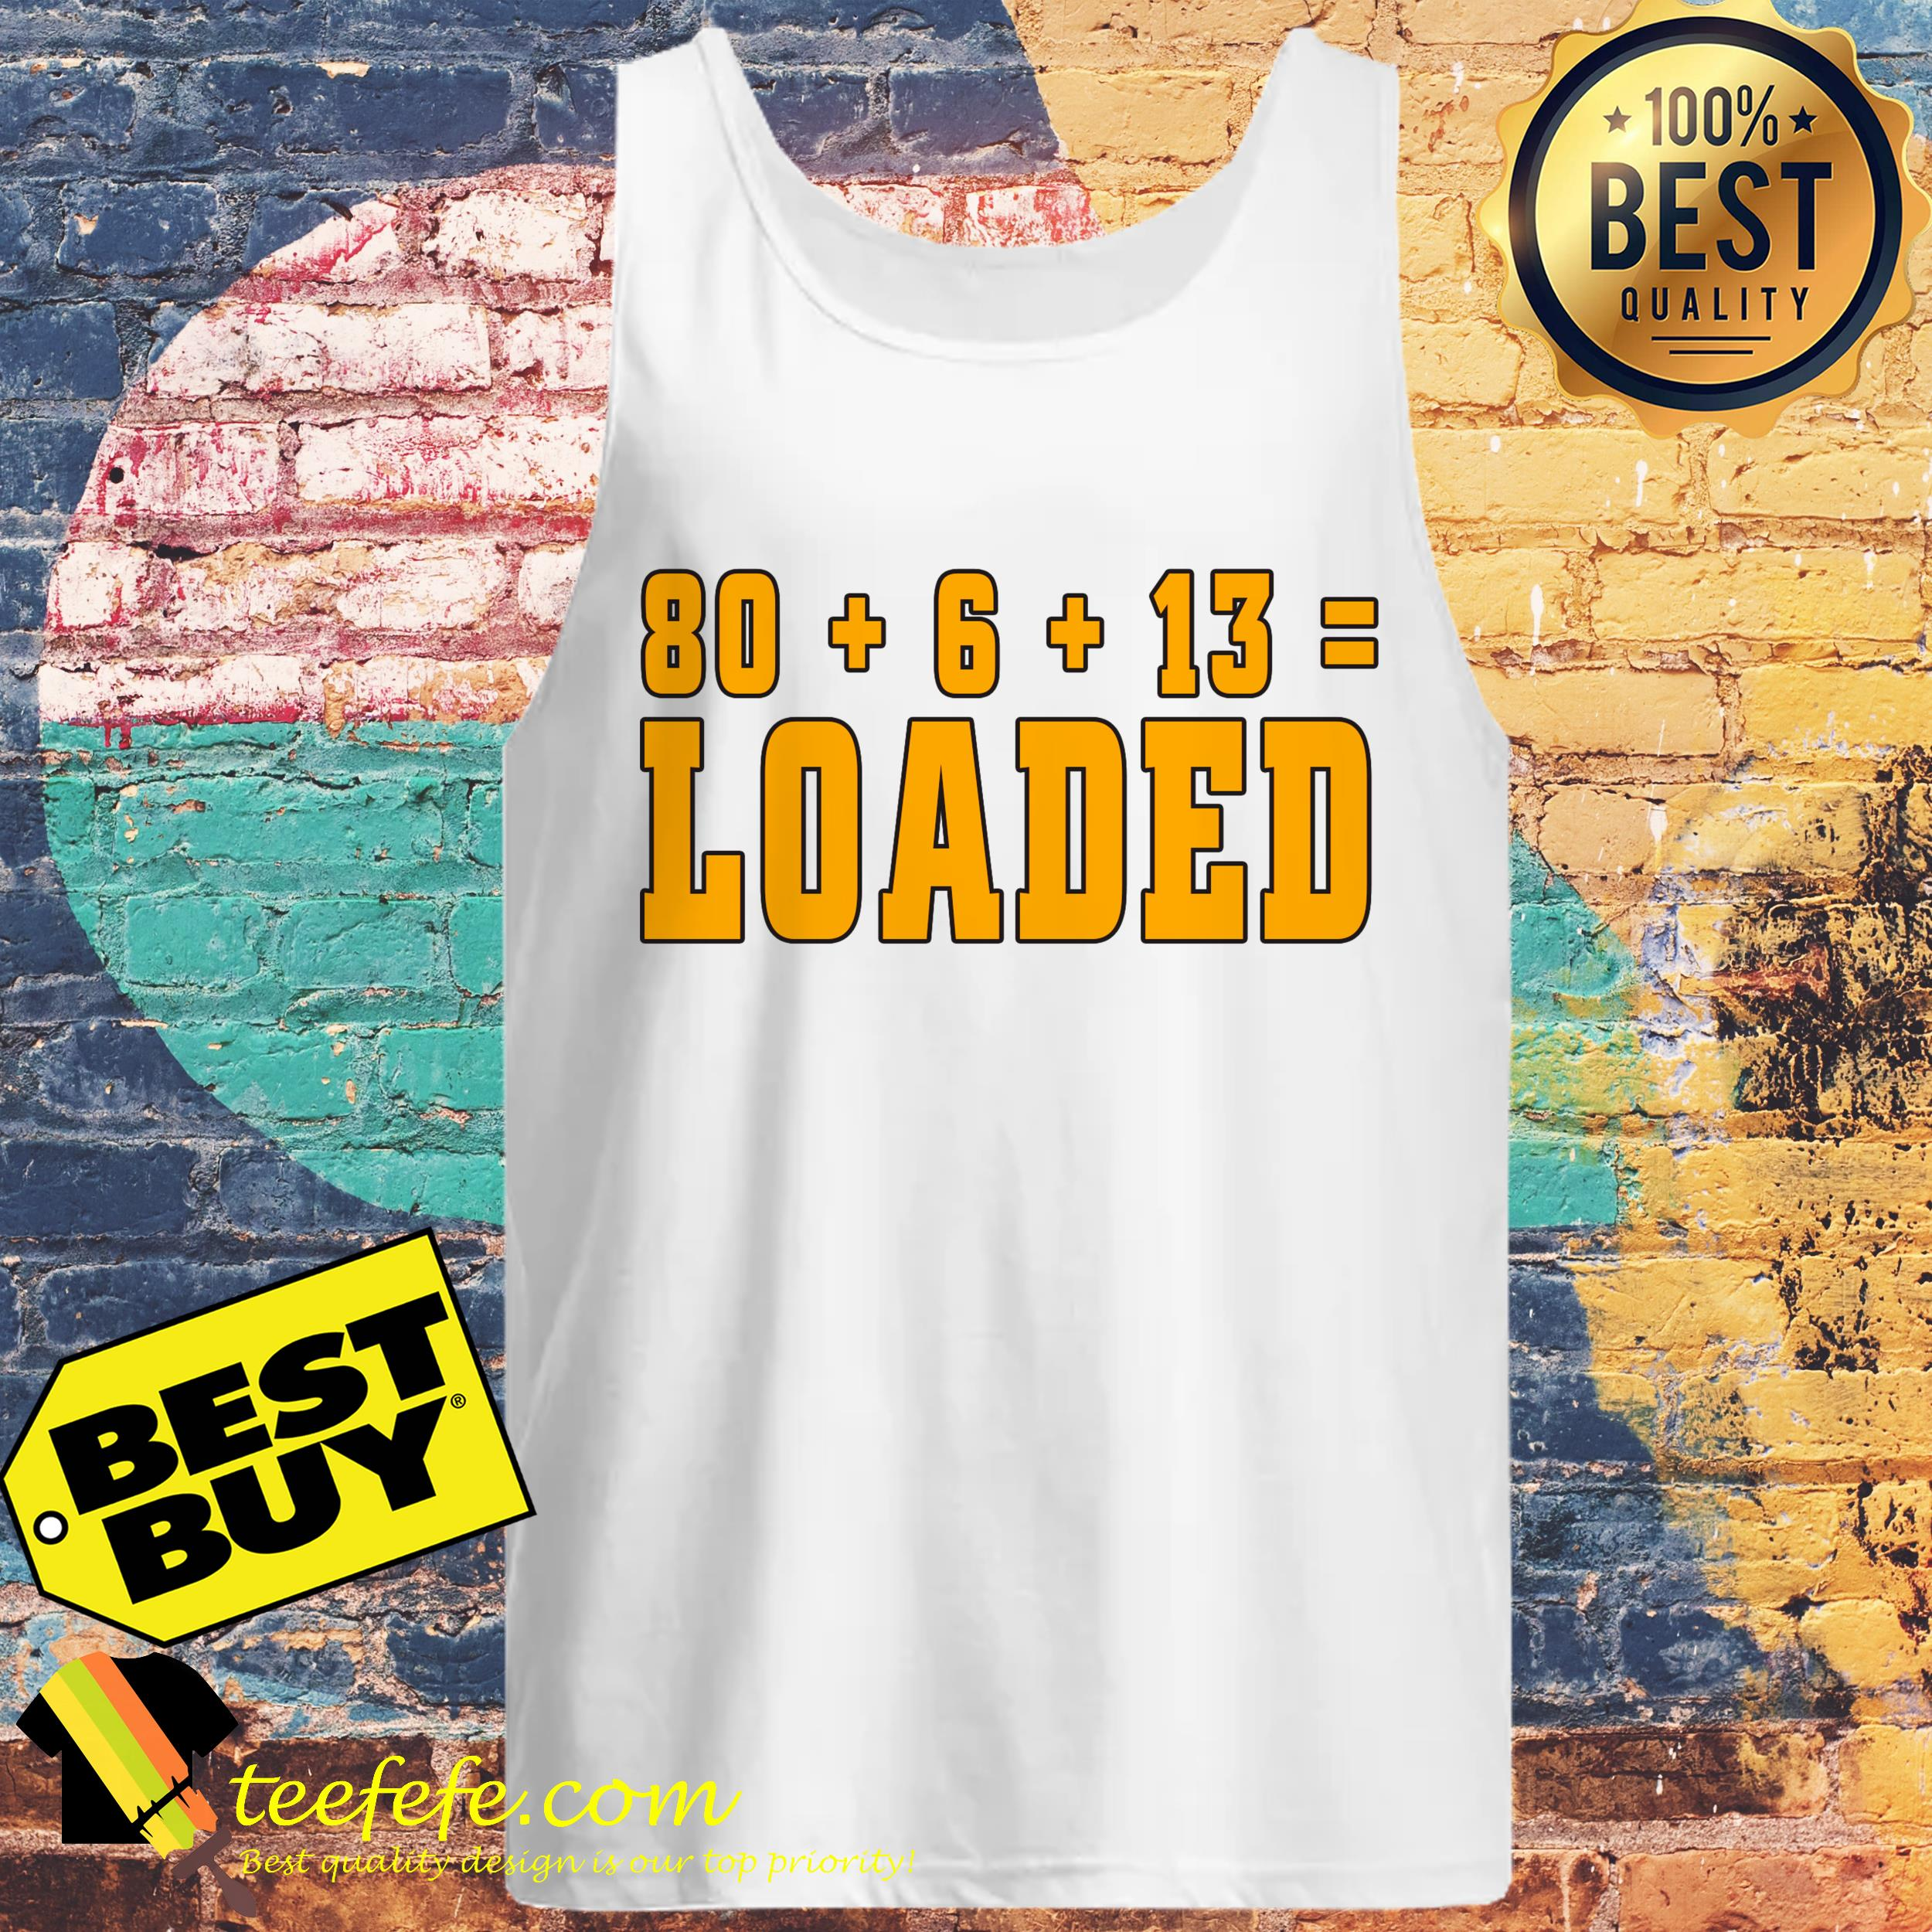 80 6 13 loaded baker mayfield cleveland browns tank top - 80 + 6 +13 = LOADED Baker Mayfield-Cleveland Browns shirt